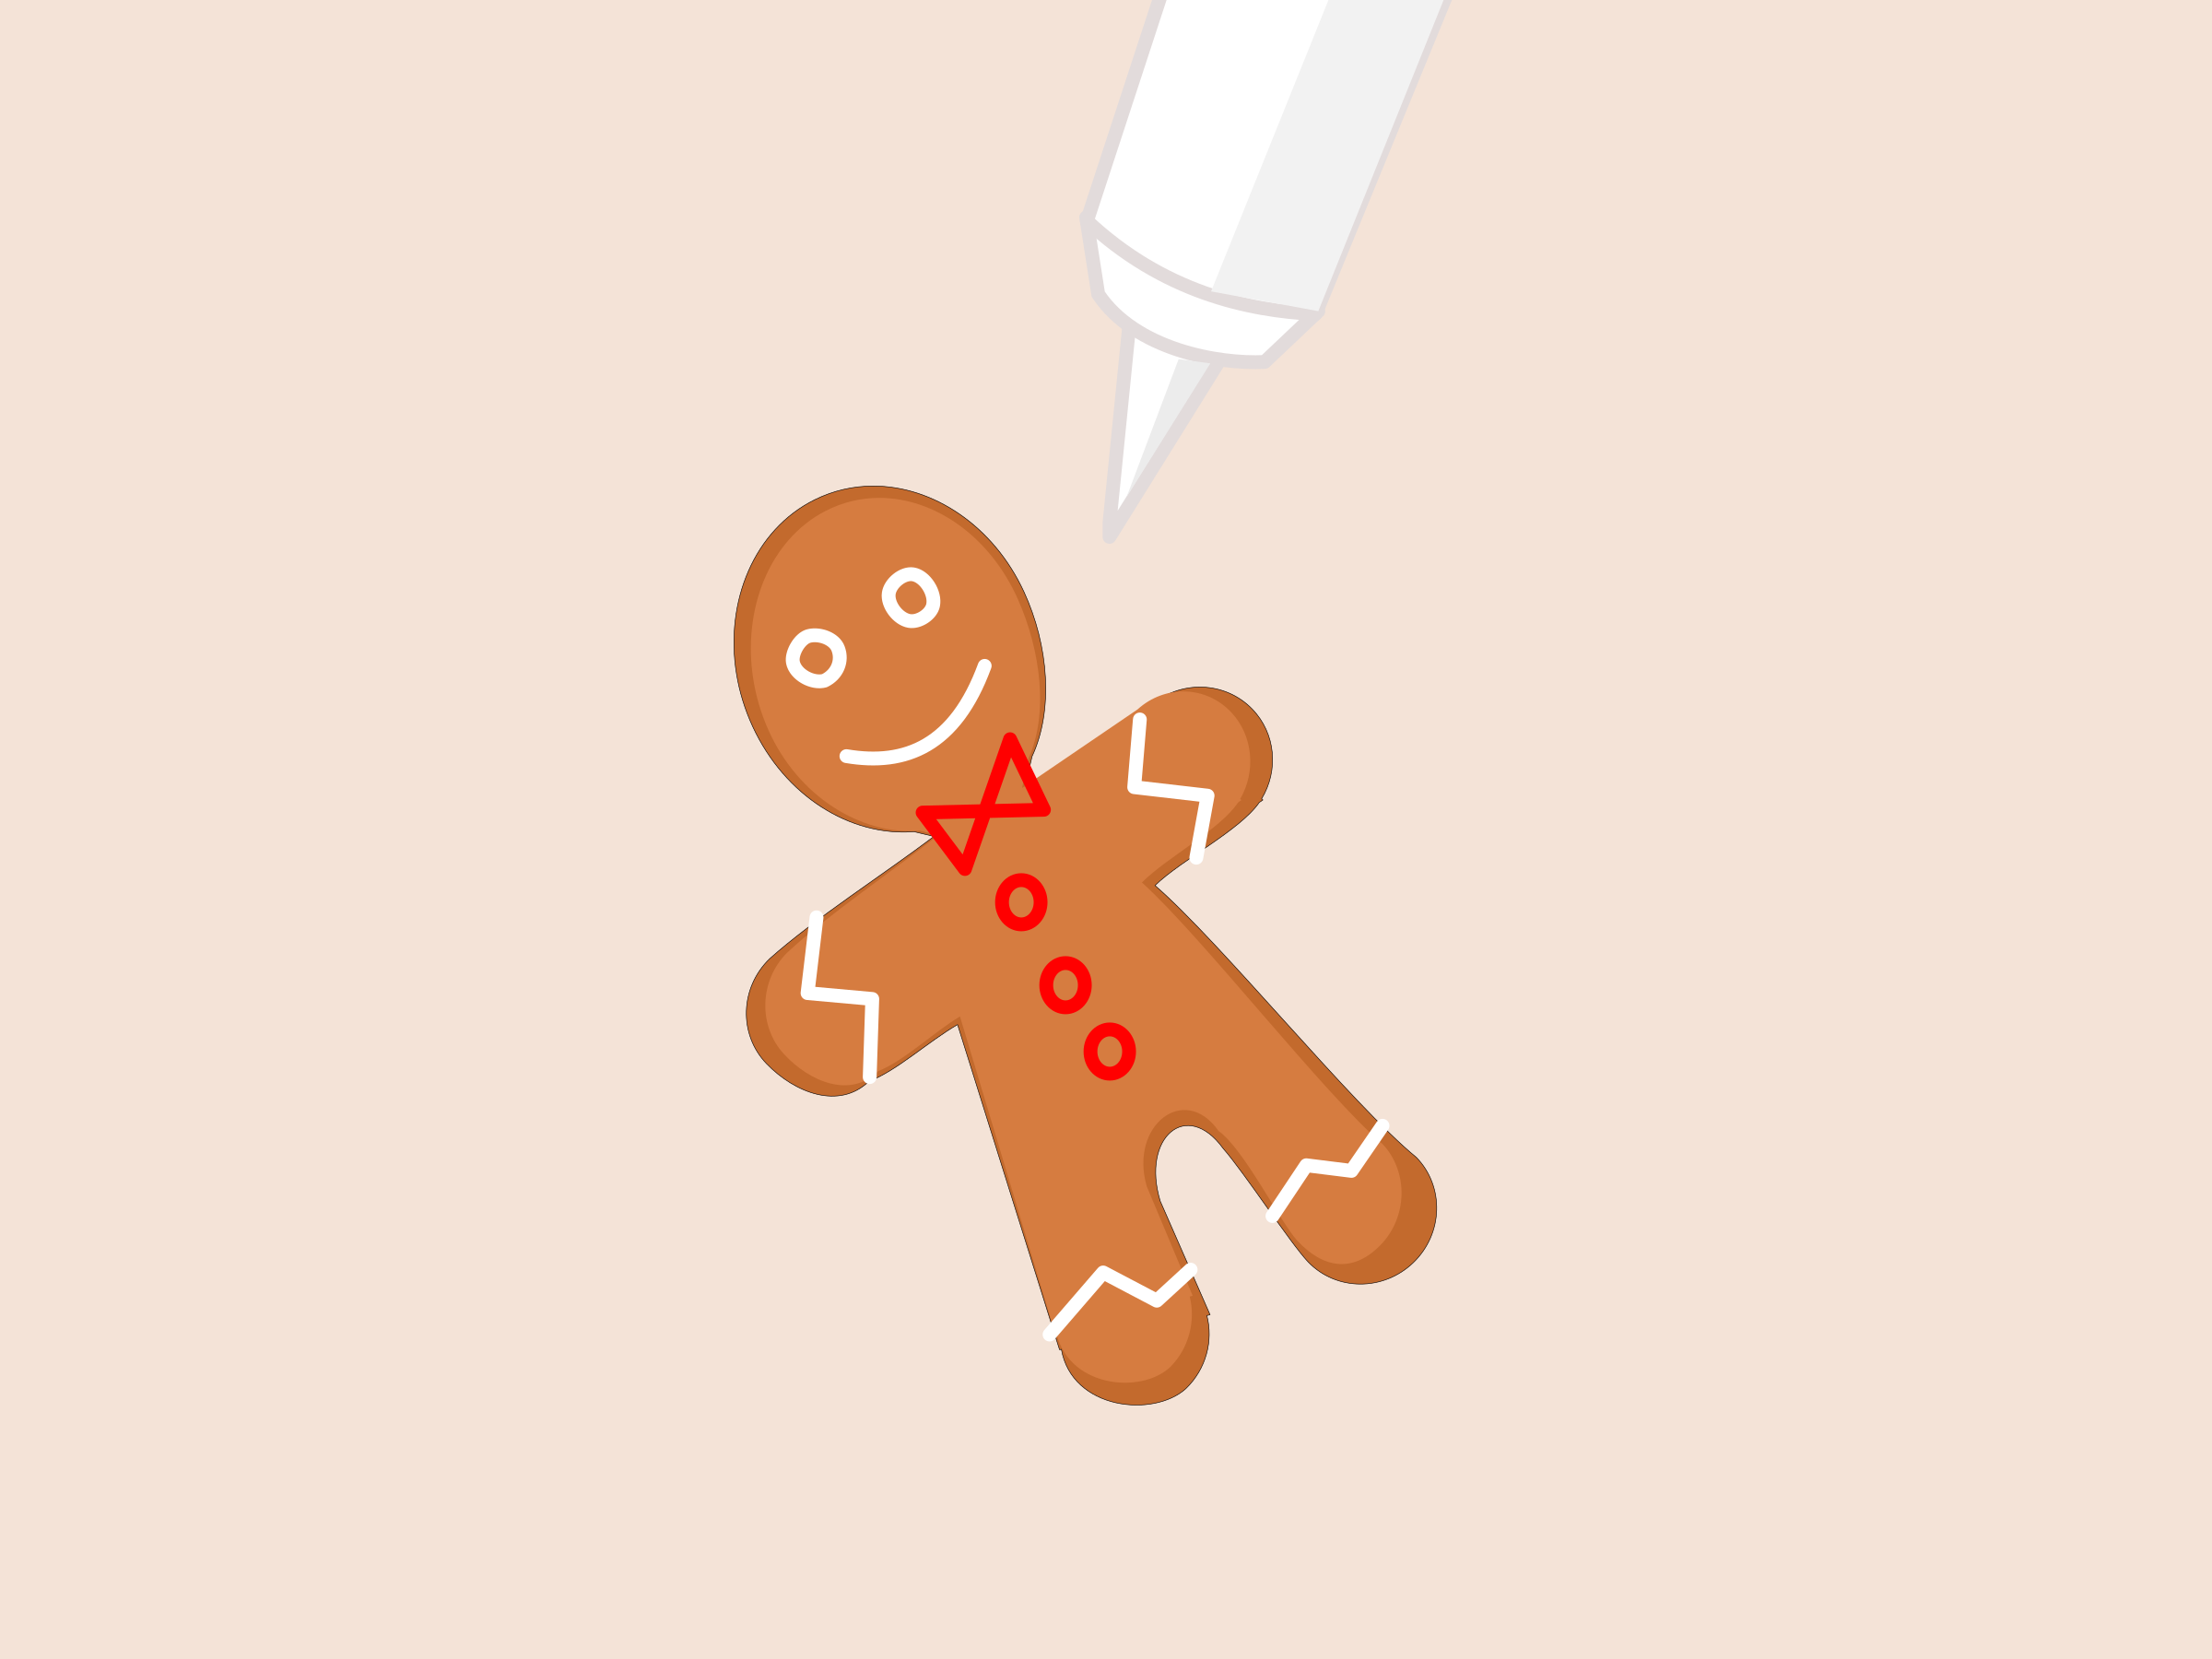 Animation: Icing the gingerbread man by aukipa